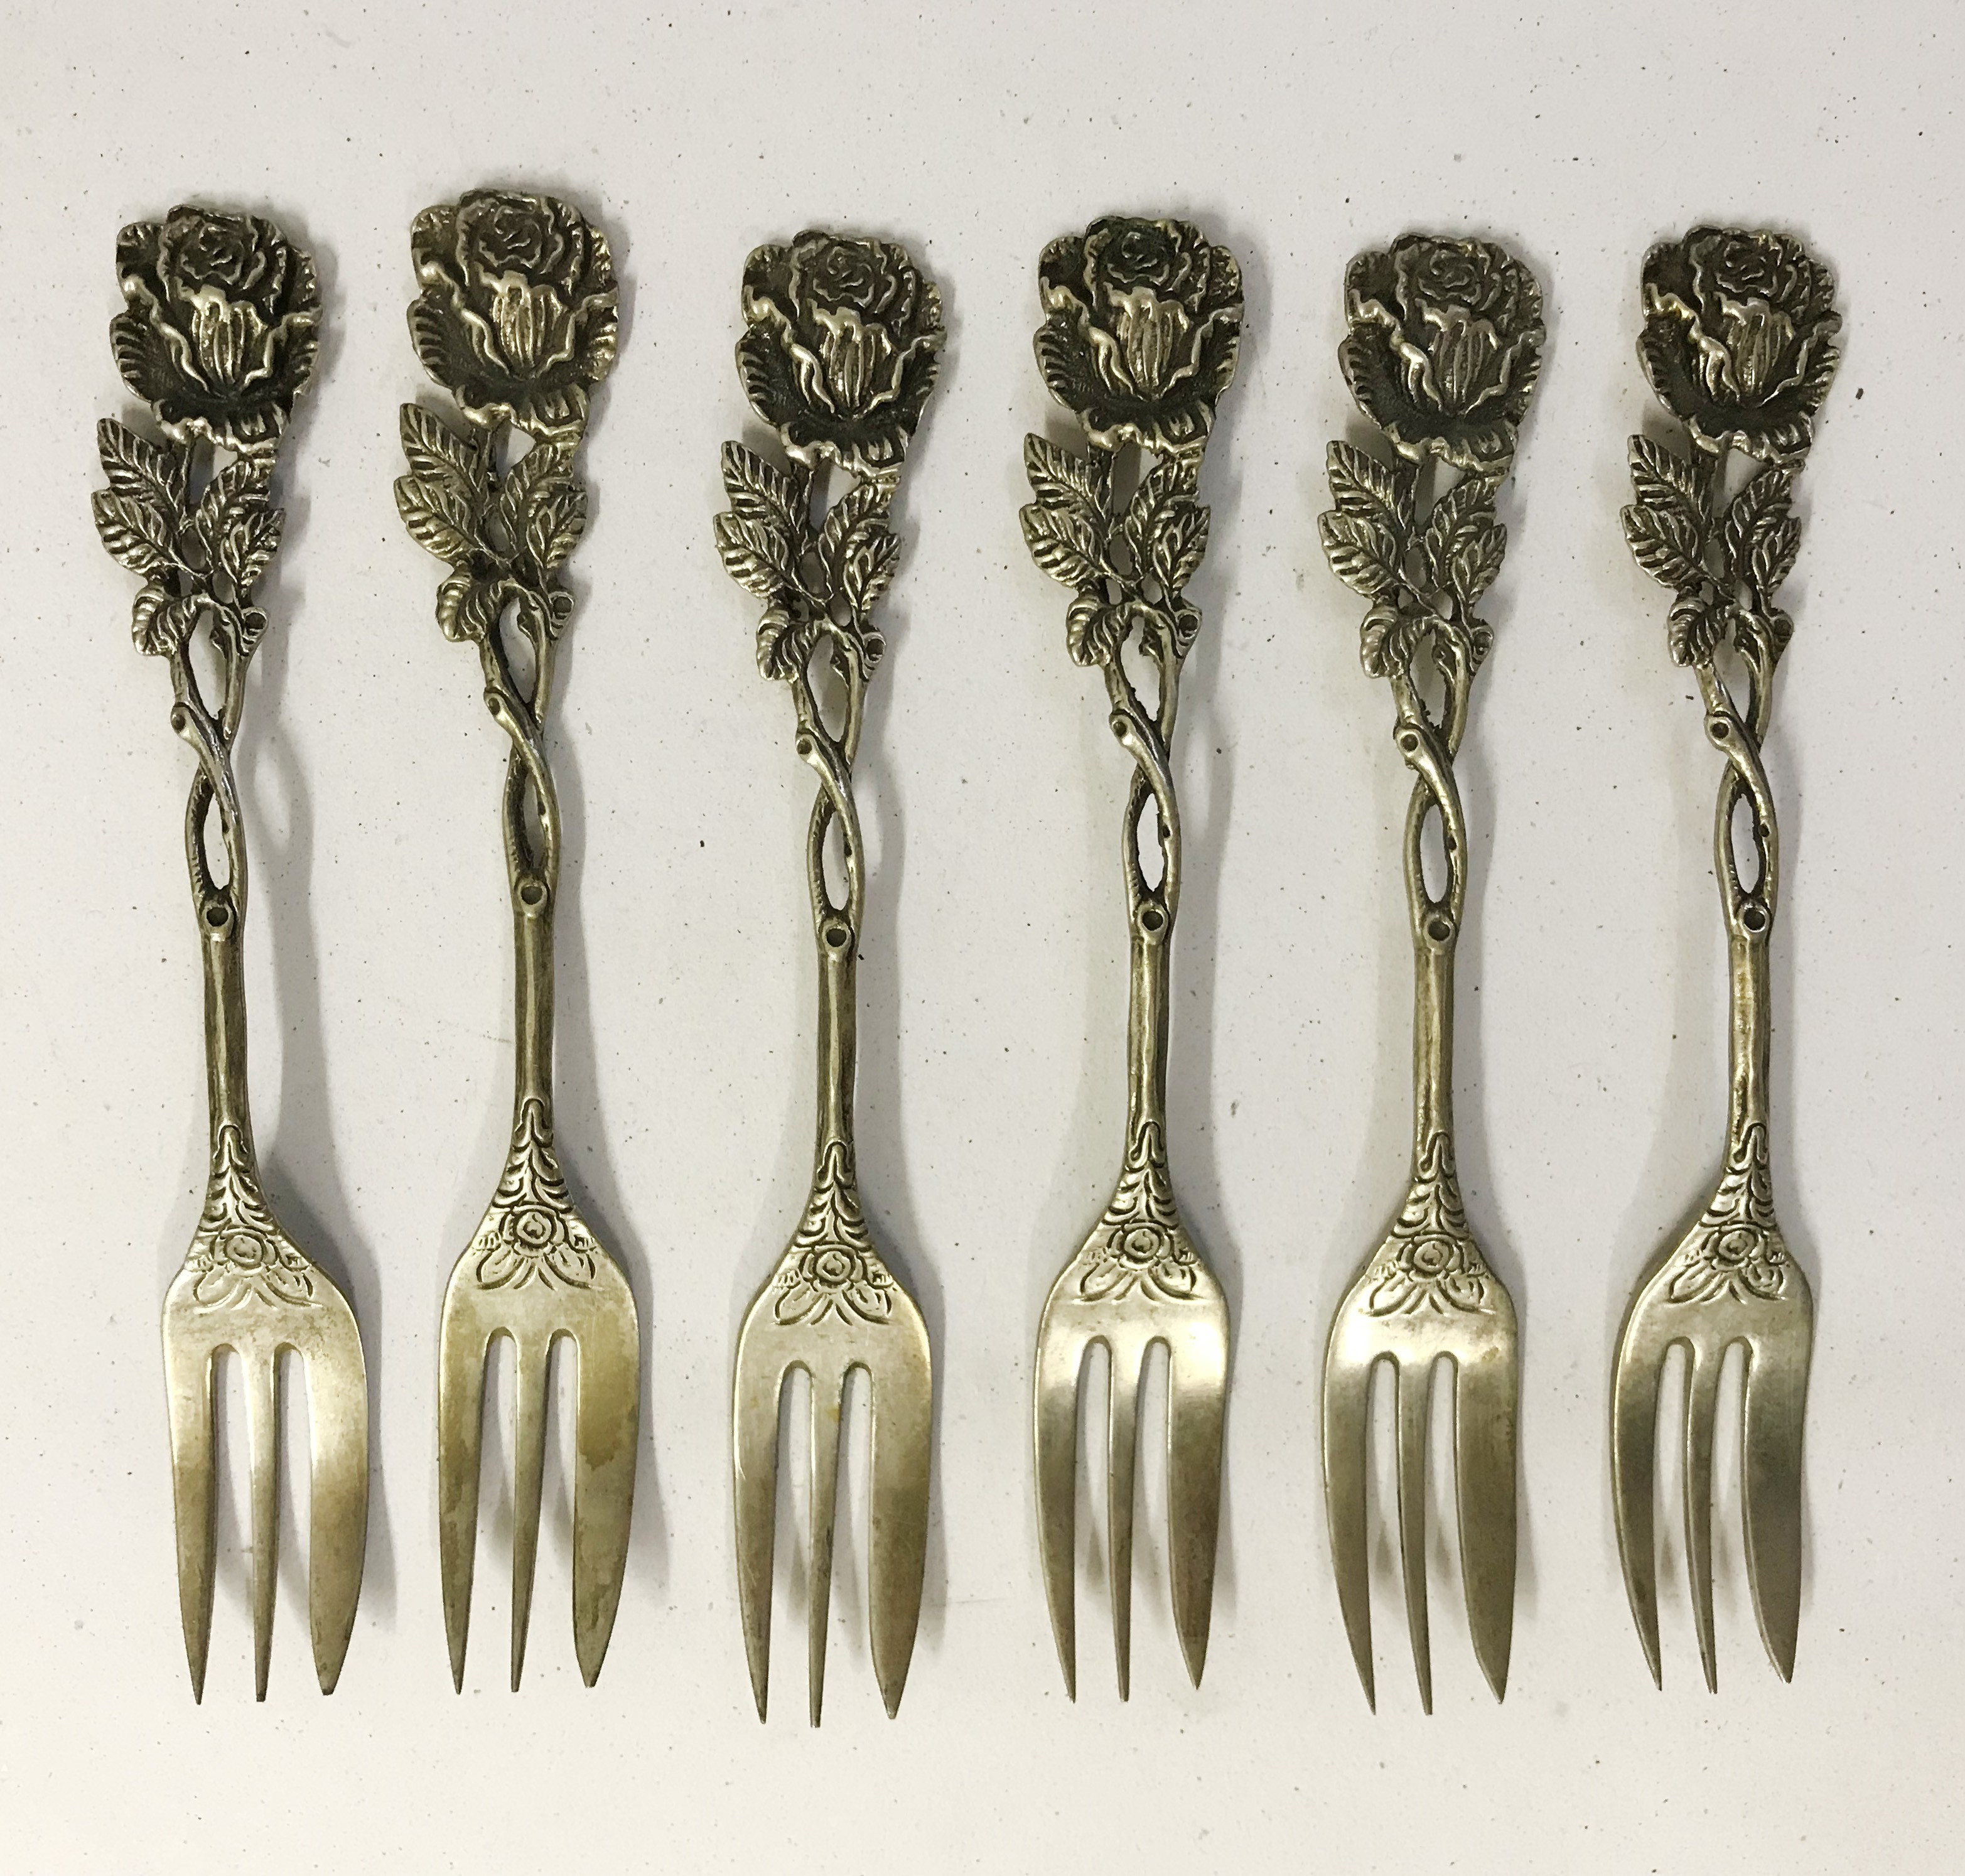 Lot 10 - ANTIQUE SET OF SIX GERMAN DESERT FORKS WITH FLORAL PATTERN HALLMARKED 835